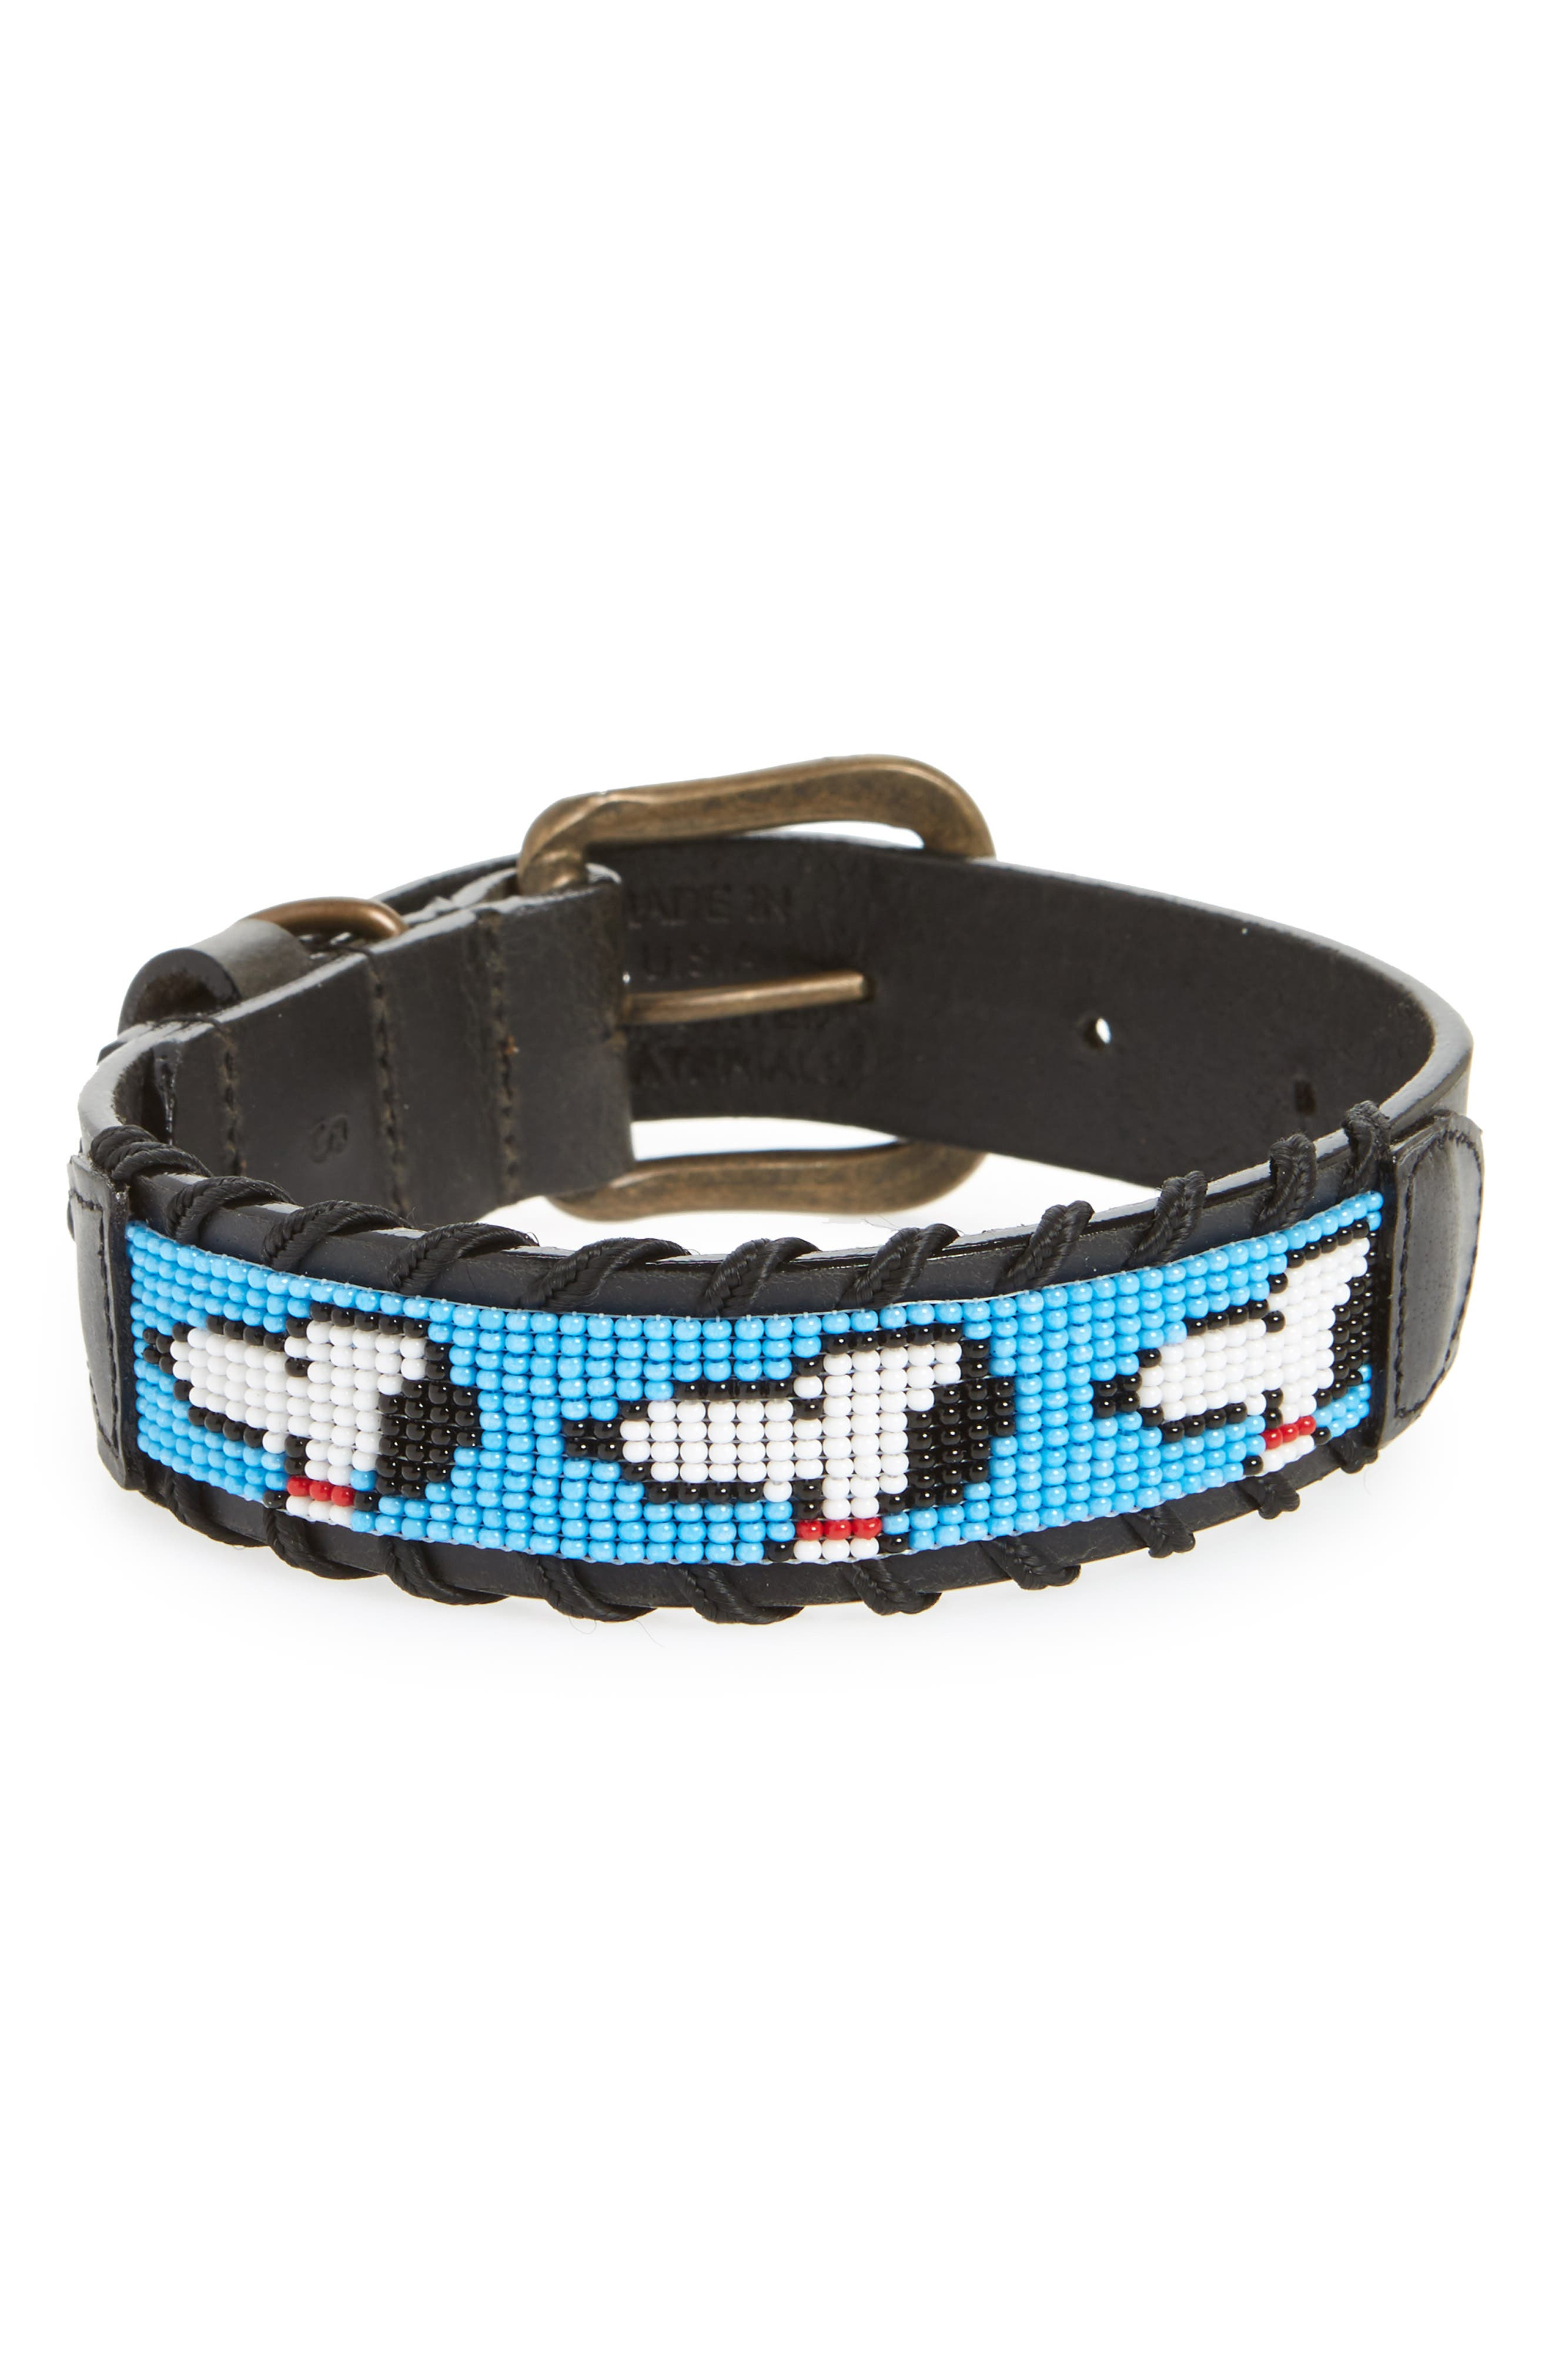 Peanuts - Snoopy Silhouette Beaded Dog Collar,                             Main thumbnail 1, color,                             Black